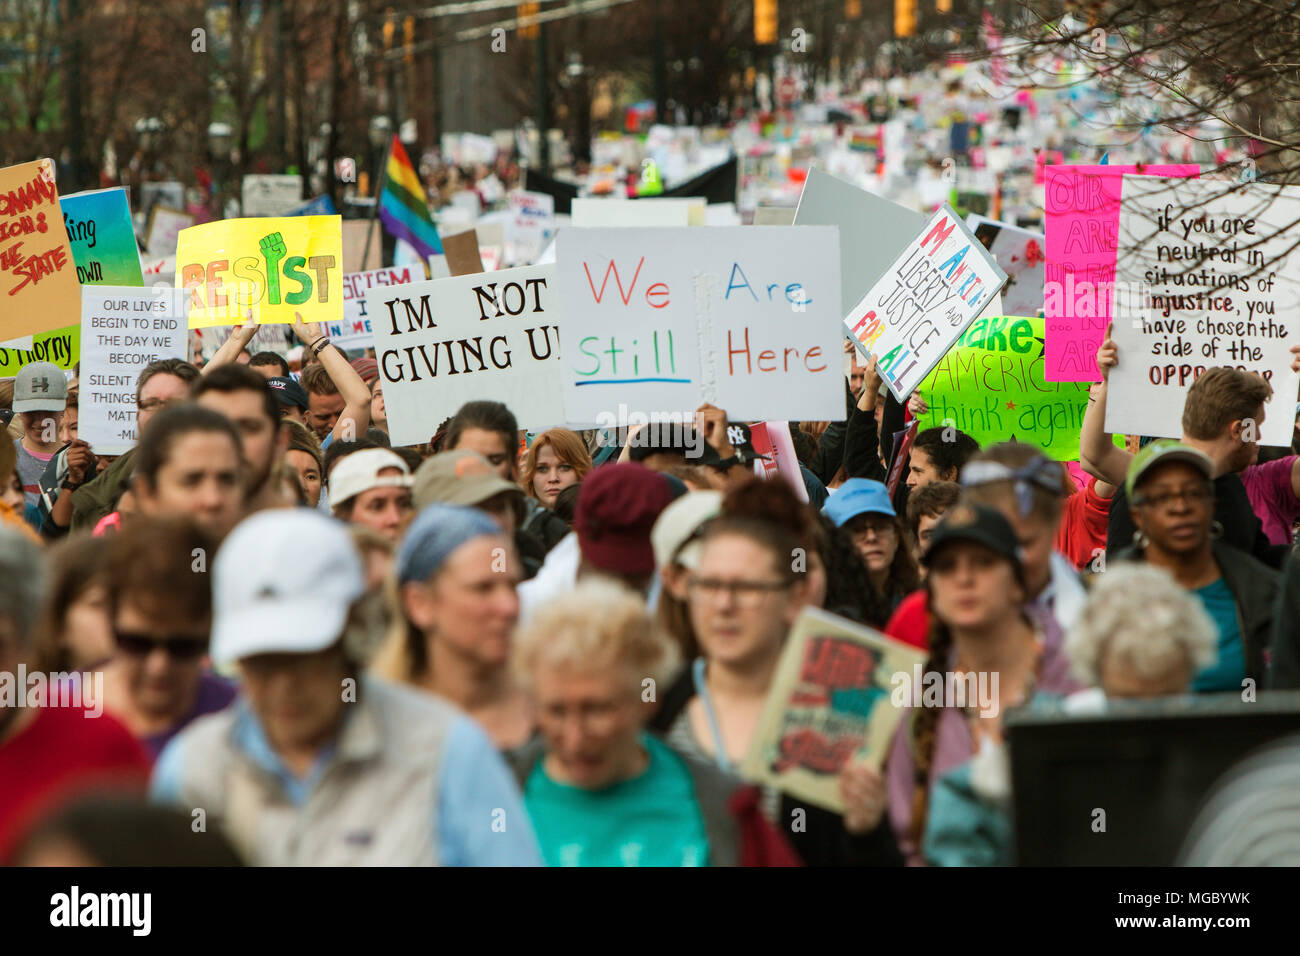 A group of protest signs rise above the crowd as thousands of protesters walk in the March For Women on January 21, 2016 in Atlanta, GA. - Stock Image